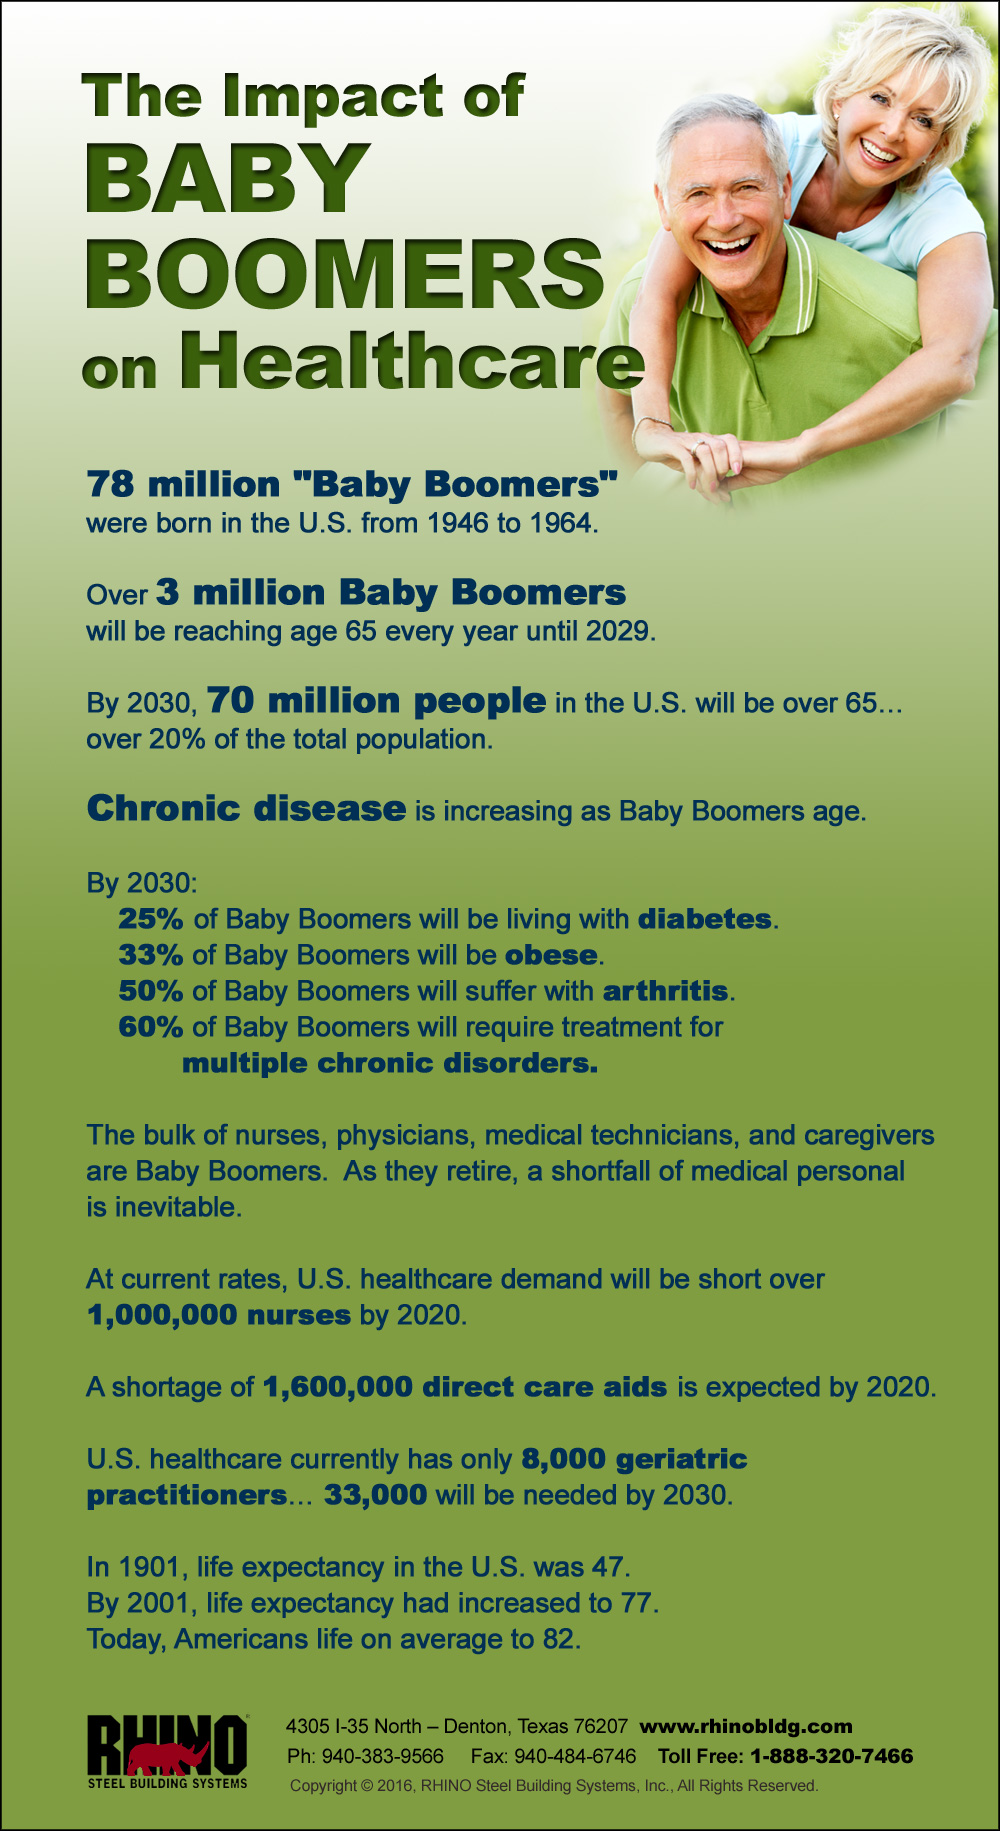 baby boomer and health care Current news and background about boomer's health baby boomers are those born between 1946 and 1964, according to the us census bureau that means they are in their 40s, 50s or early 60s, and have particular health needs.